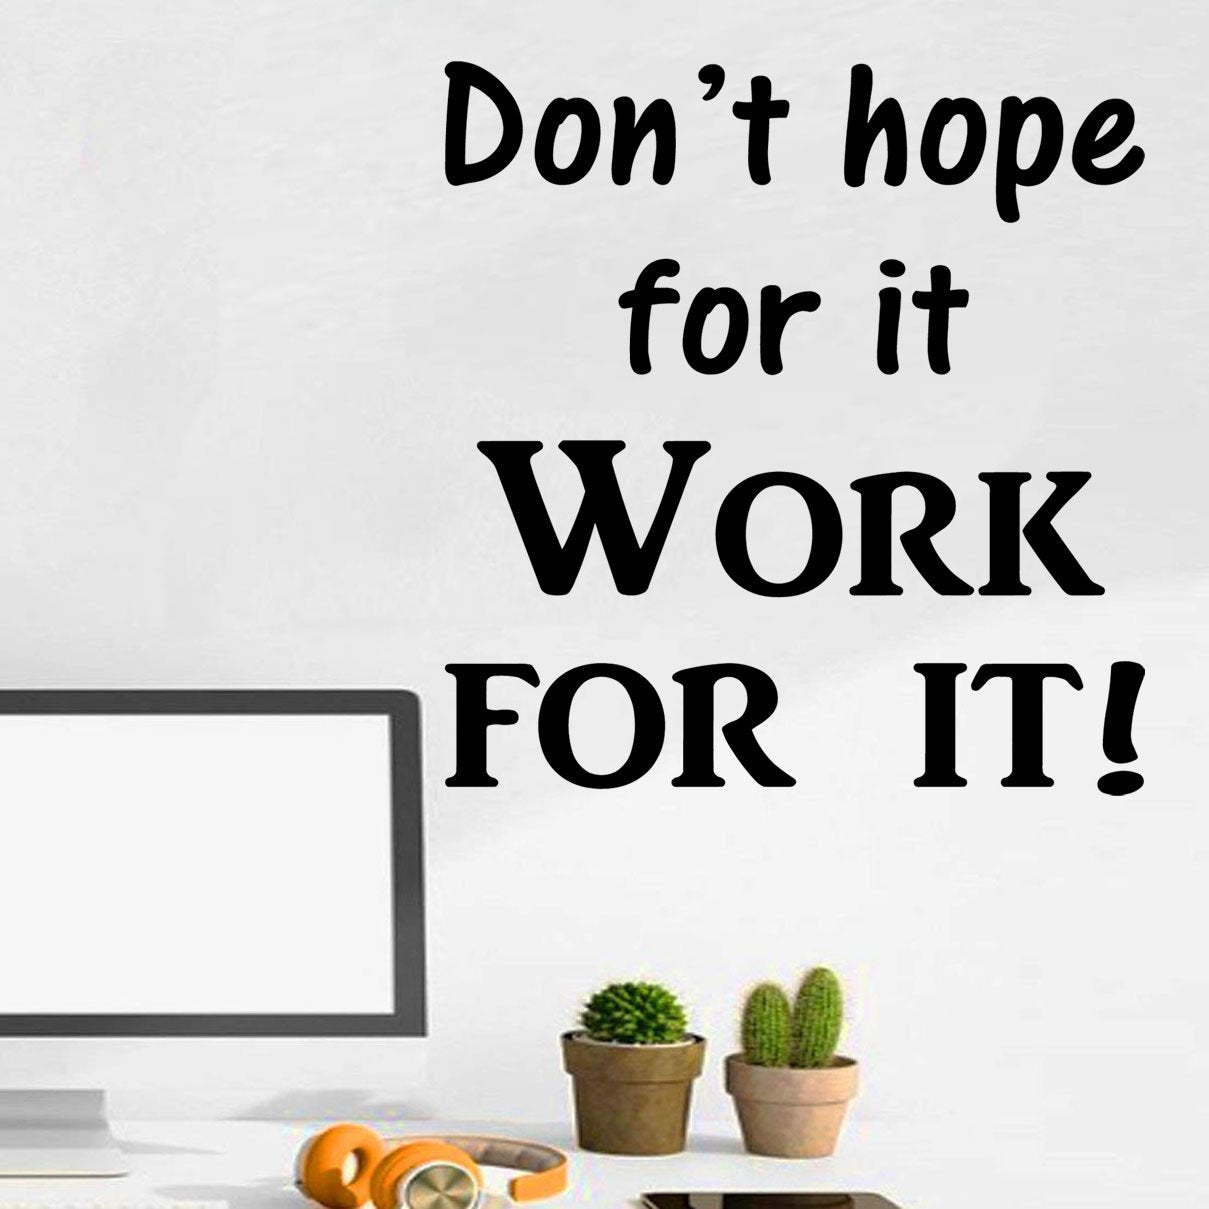 VWAQ Don't Hope for It Work for It Positivity Quotes Wall Decal - VWAQ Vinyl Wall Art Quotes and Prints